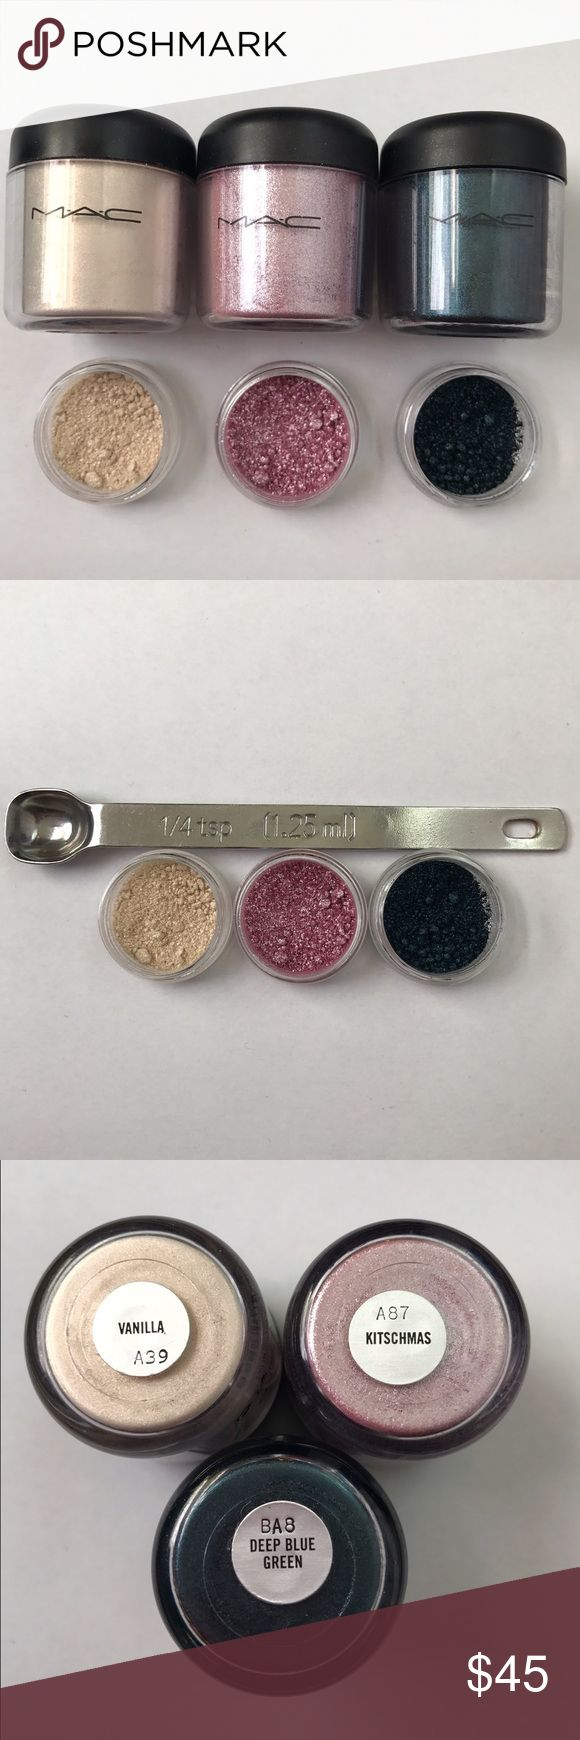 MAC Pigment Sample Set! 100% Authentic This sample set includes 1/4 teaspoon of each of the following pigments: Vanilla, Kitschmas, and Deep Blue Green! This is a perfect way to try out Authentic MAC Pigments without spending a fortune on them. These Pigments are perfect for any occasion! Get them while they last! SHIPS THE NEXT DAY! Pigments come in 3g BPA Free jars! MAC Cosmetics Makeup Eyeshadow